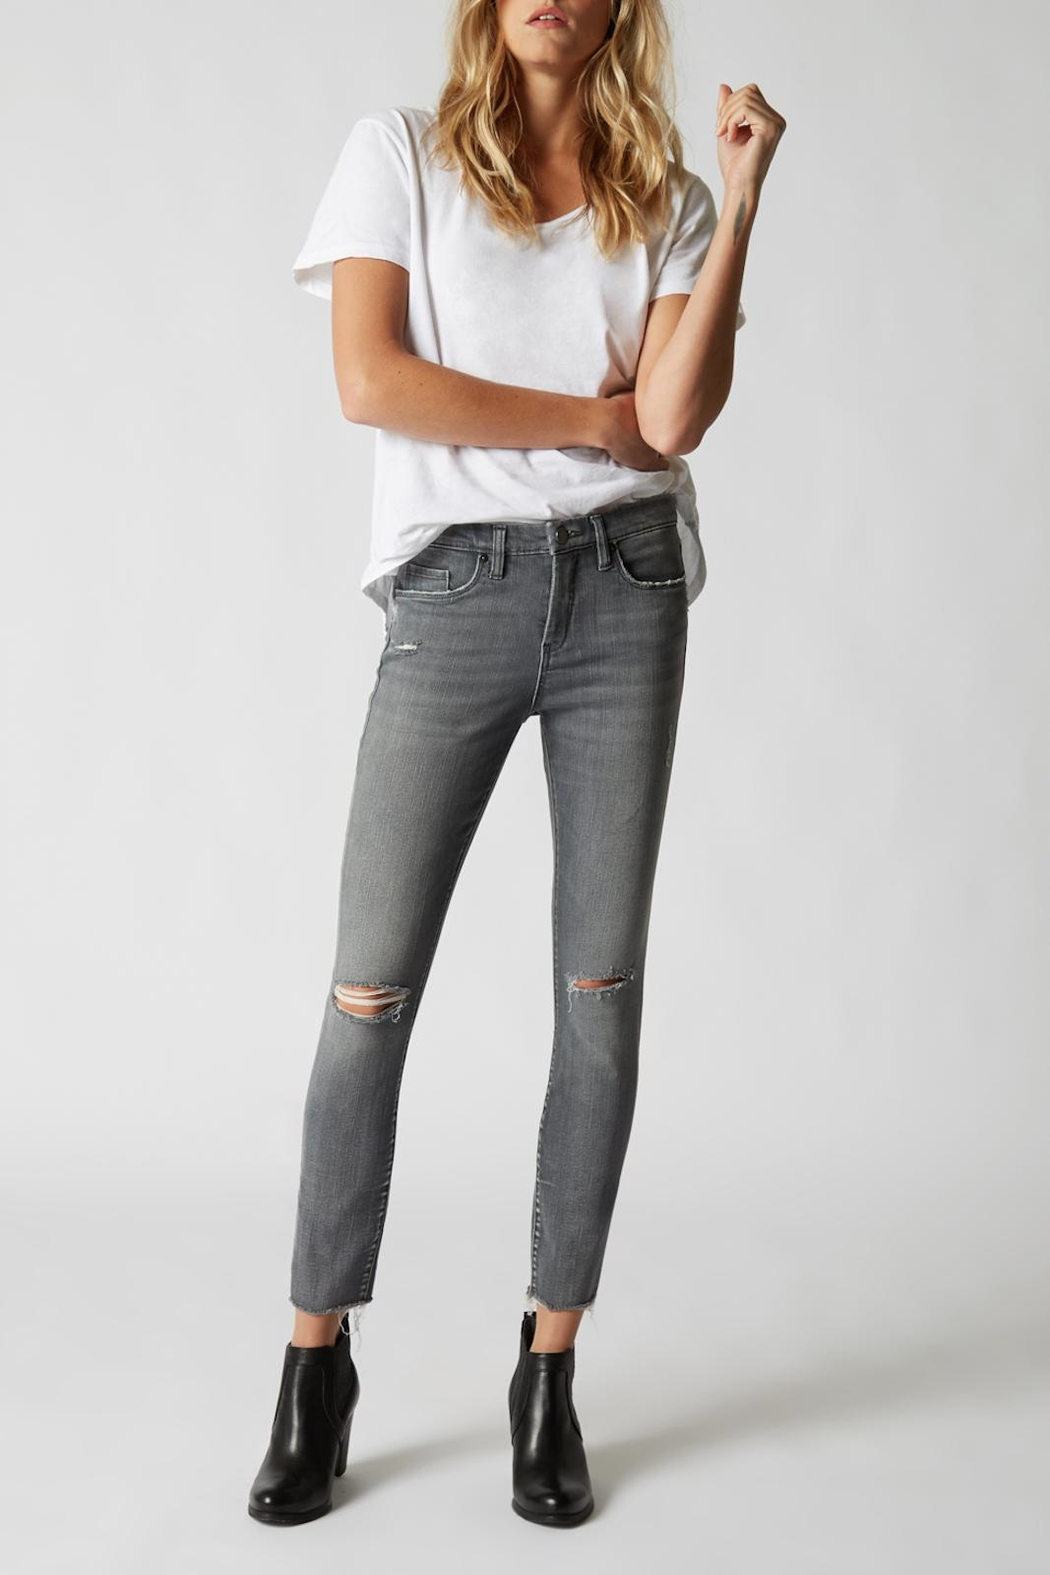 BlankNYC Tequila Royale Jeans - Main Image